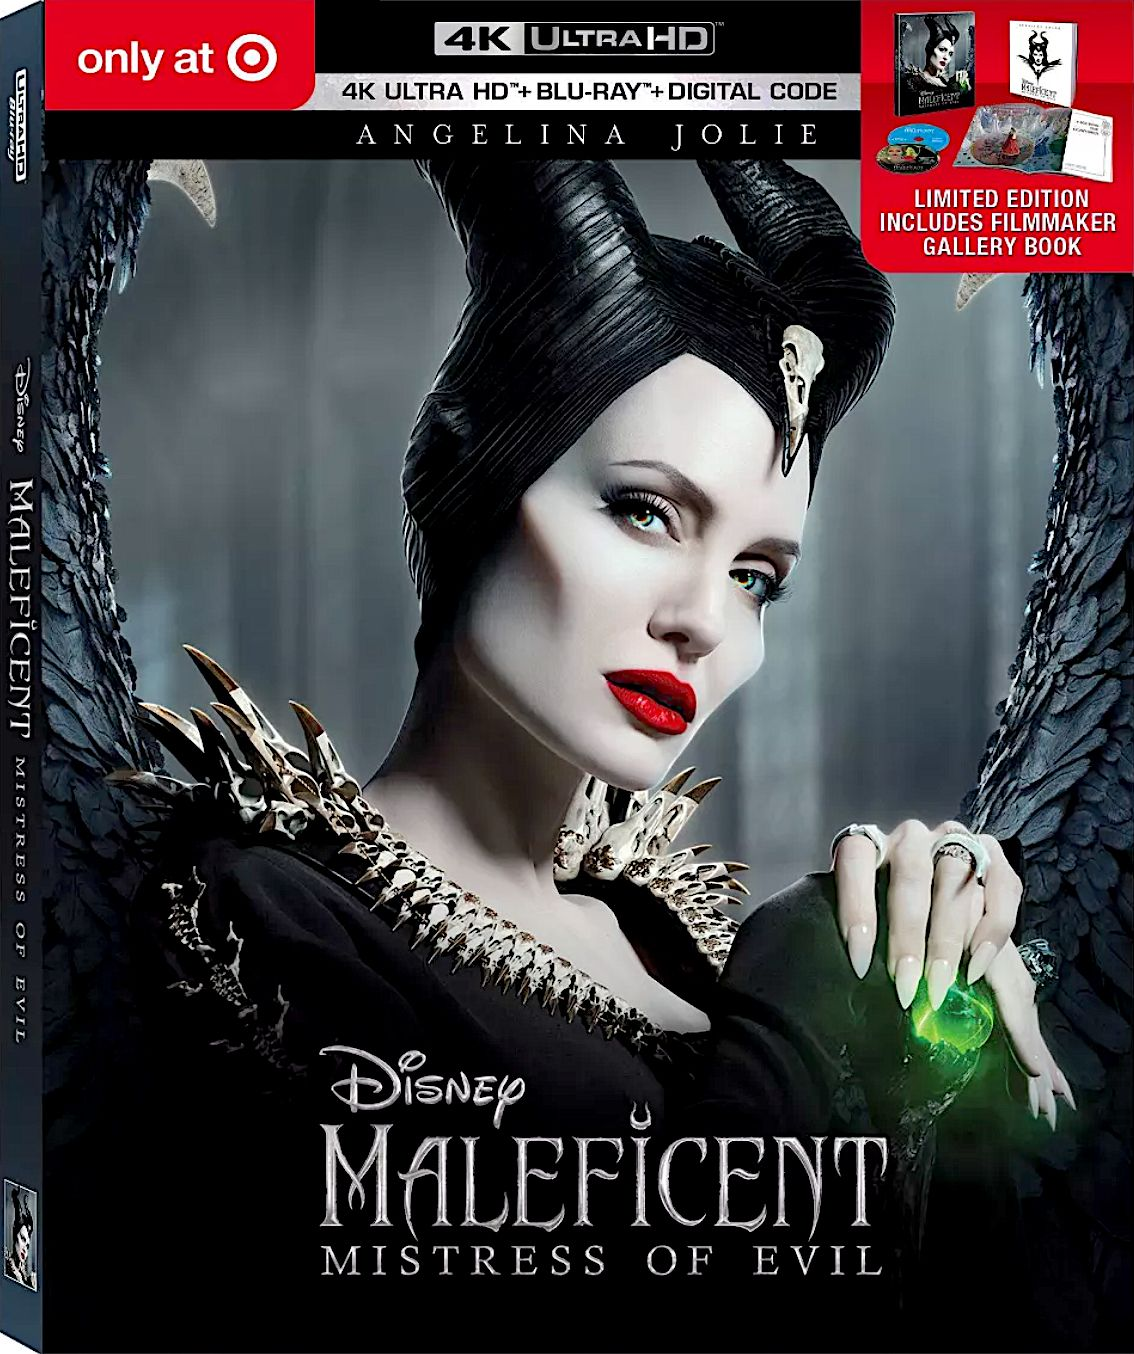 MALEFICENT MISTRESS OF EVIL TARGET EXCLUSIVE 4K BLURAY